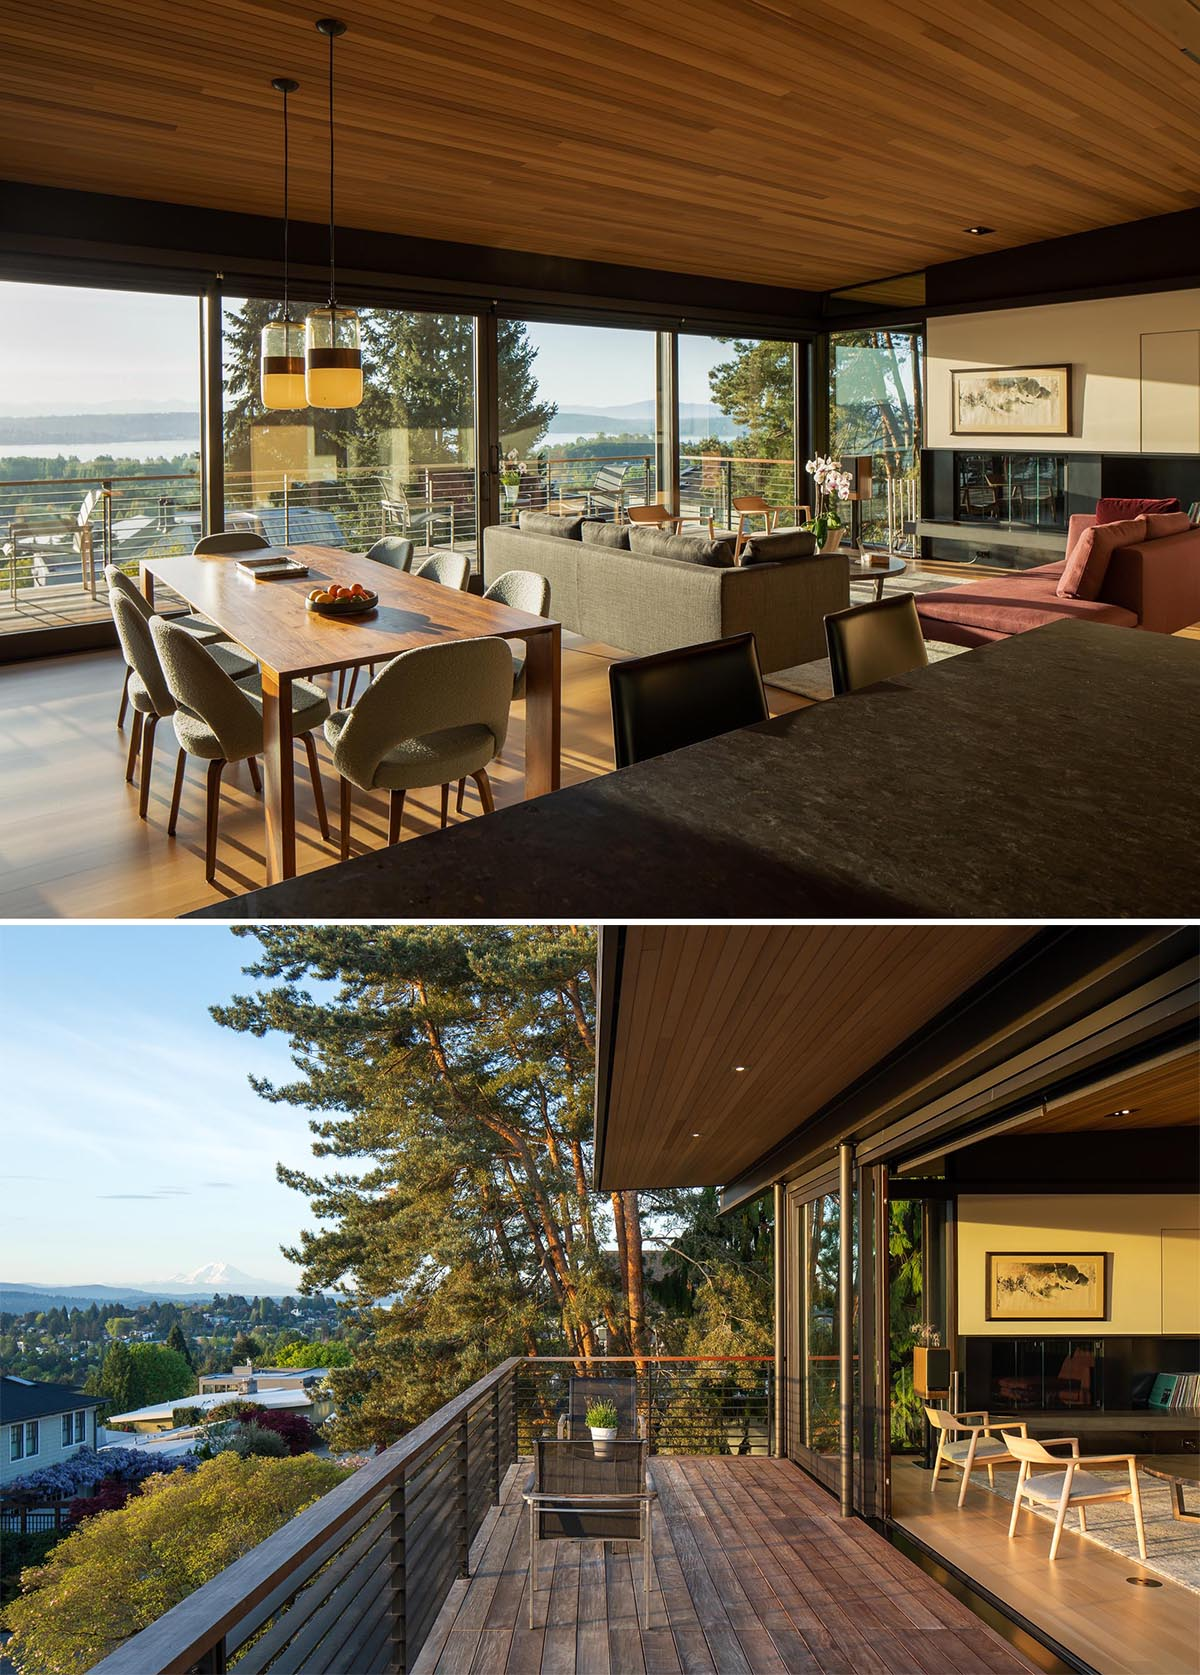 Sliding glass doors open the interior of this modern home to a balcony with expansive views.